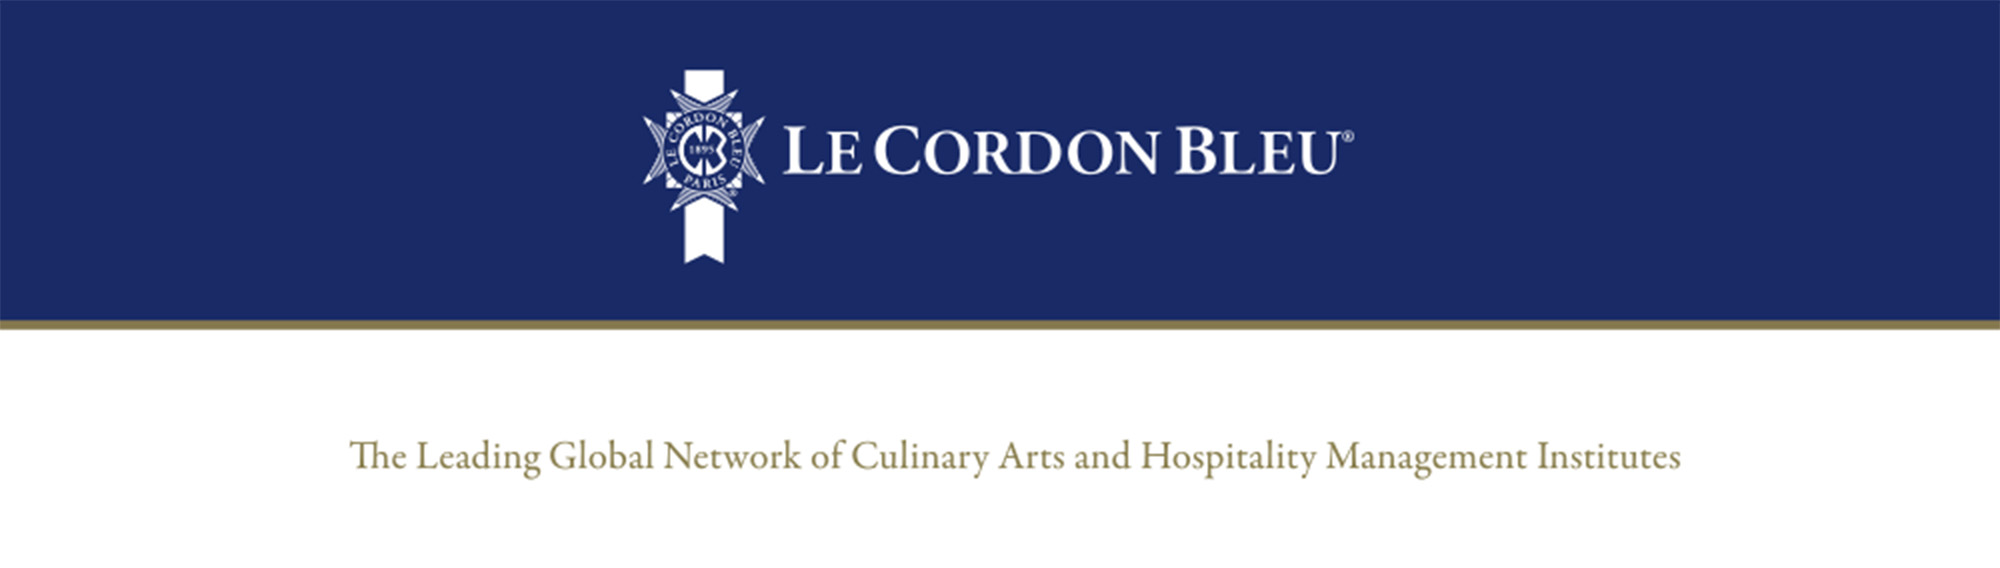 Le Cordon Bleu - The leading Global Network of Culinary Arts And Hospitality Management Institutes